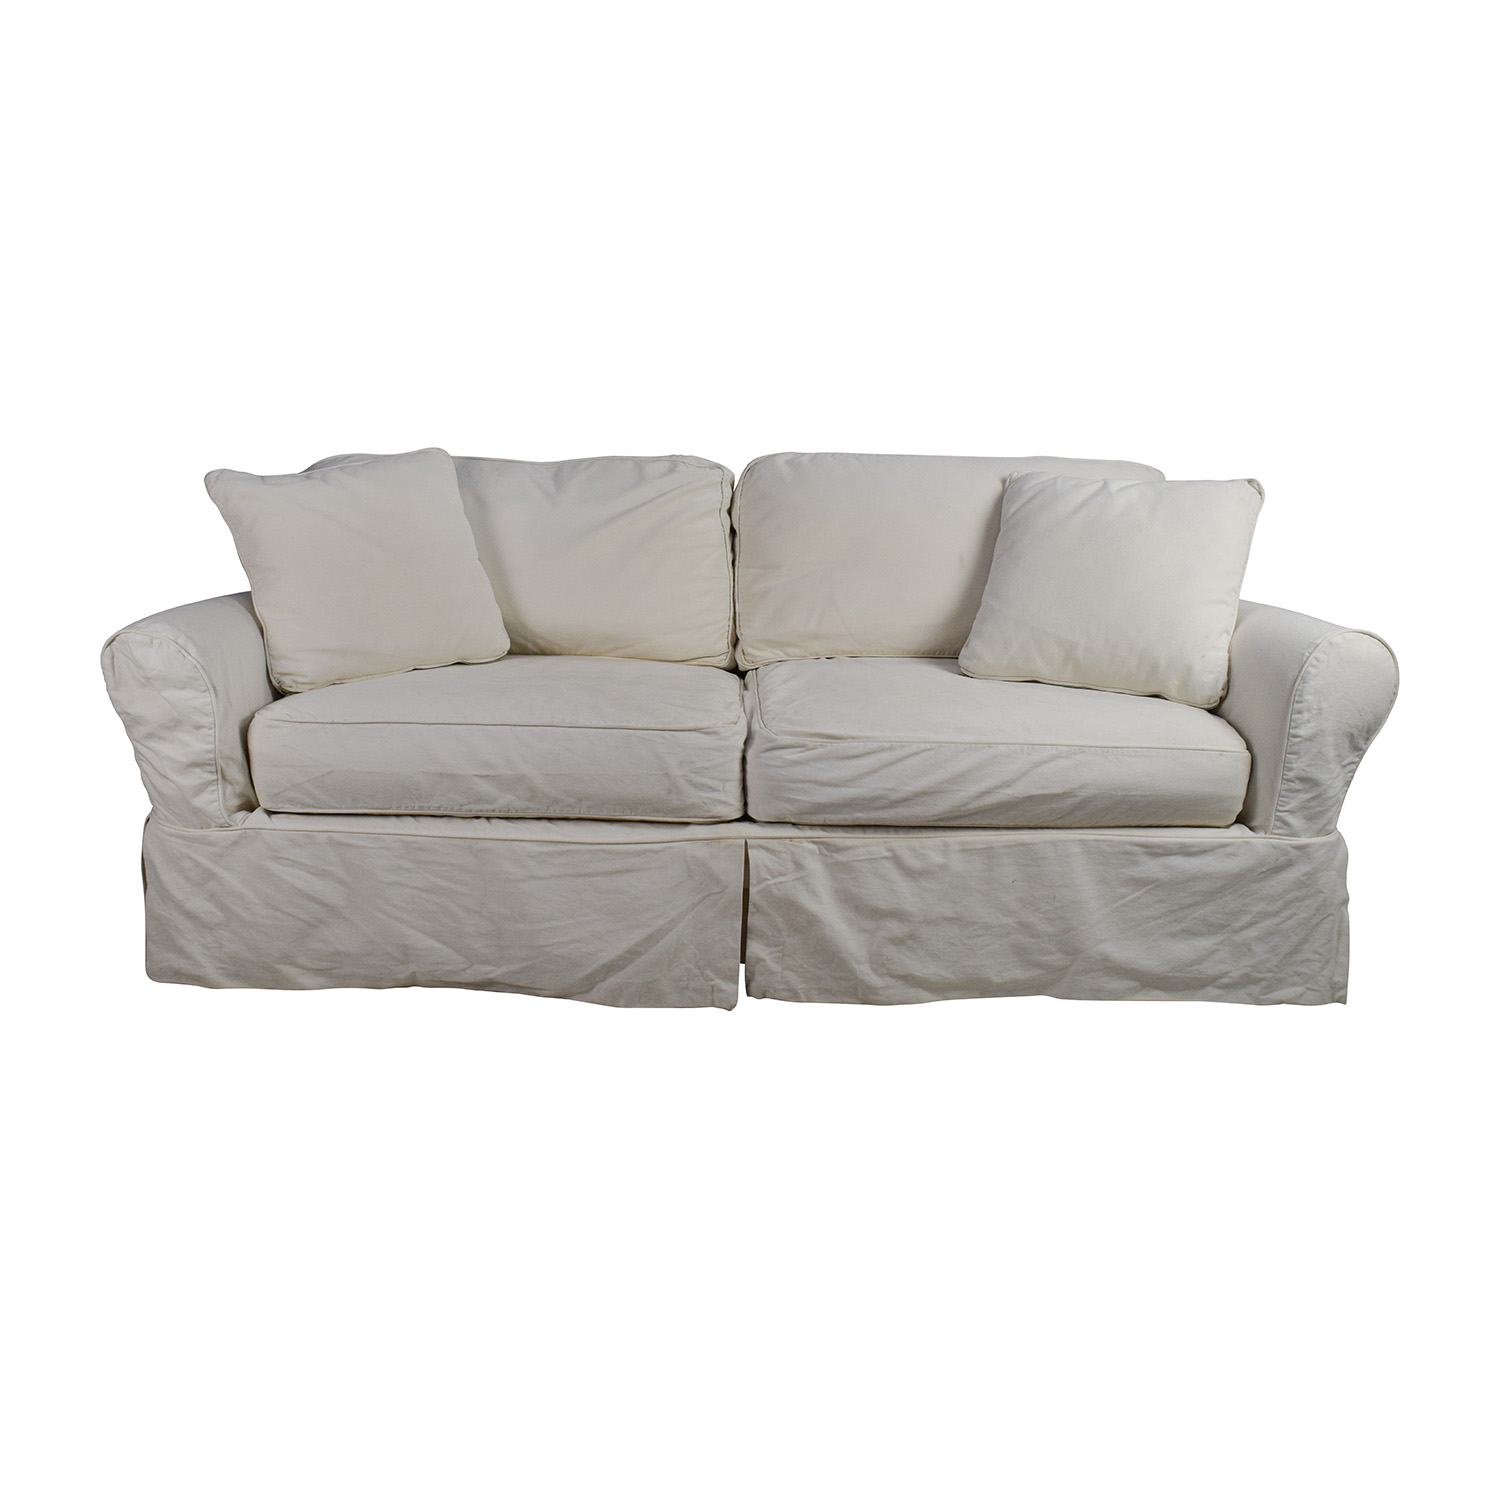 Sofas Raymour And Flanigan I Want A Leather Sofa Raymour